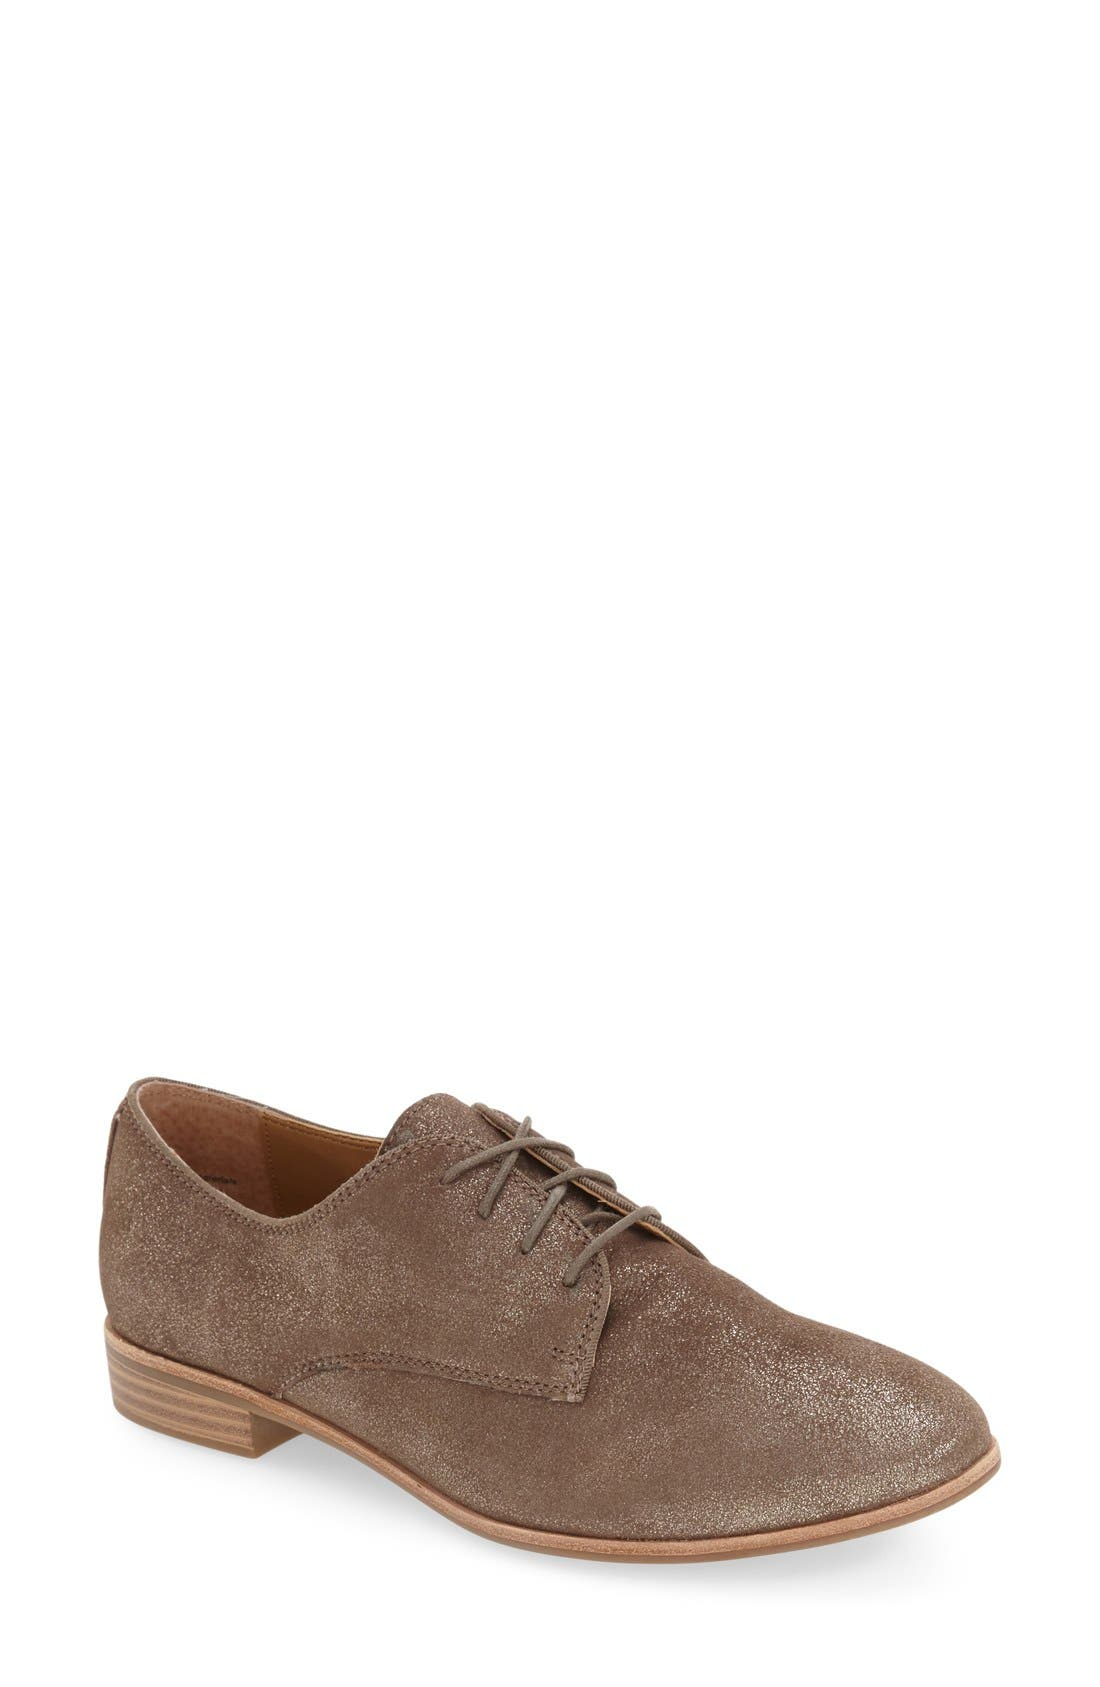 Alternate Image 1 Selected - G.H. Bass & Co. 'Ella' Leather Oxford (Women)